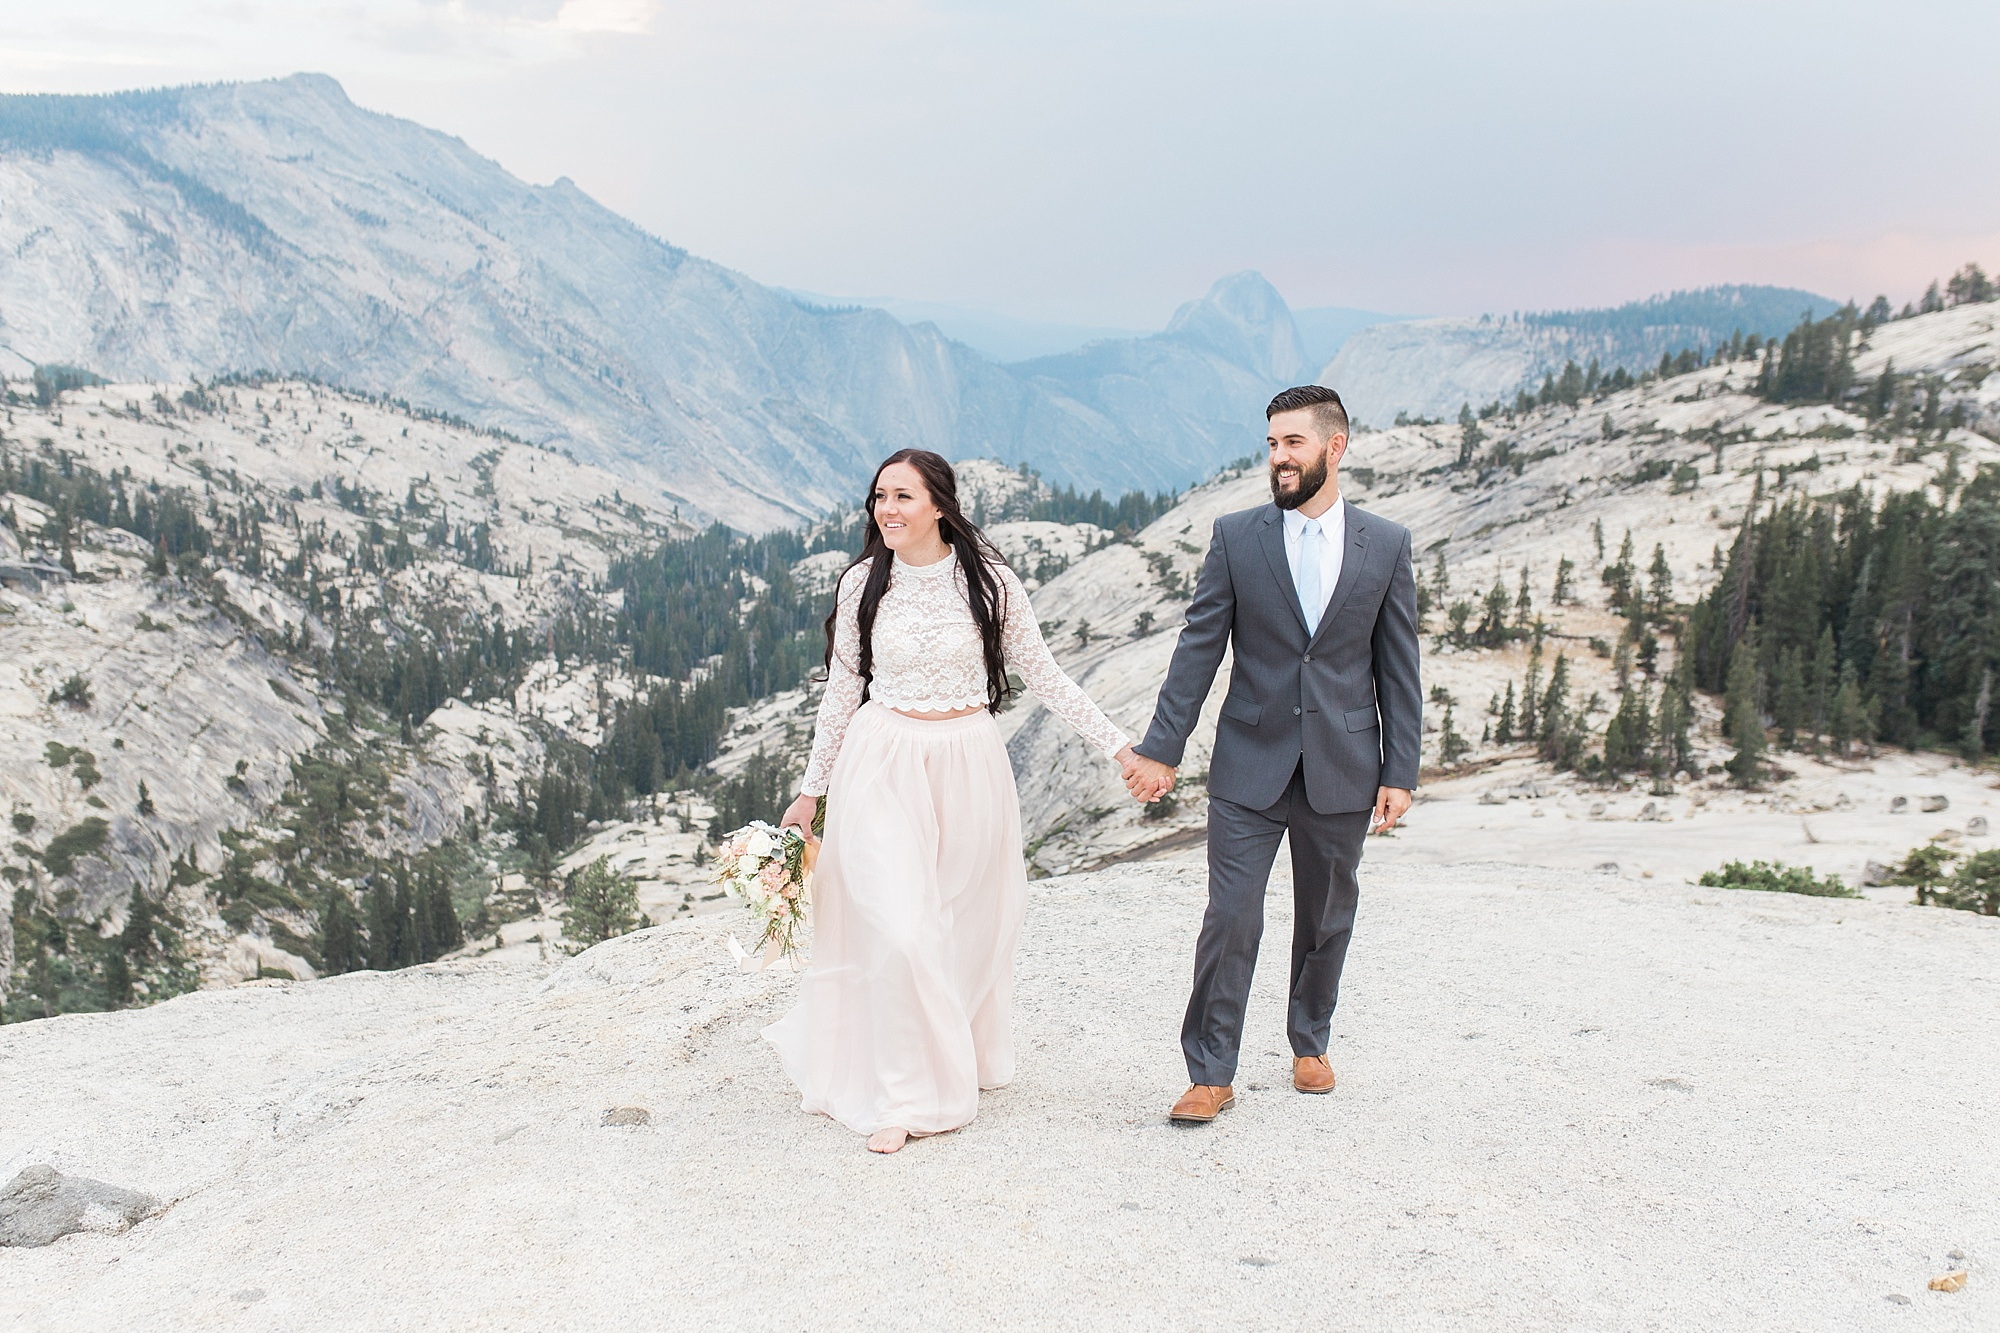 Ashley Baumgartner Photography & Calligraphy Yosemite Vow Renewal featured on 100 Layer Cake_0007.jpg